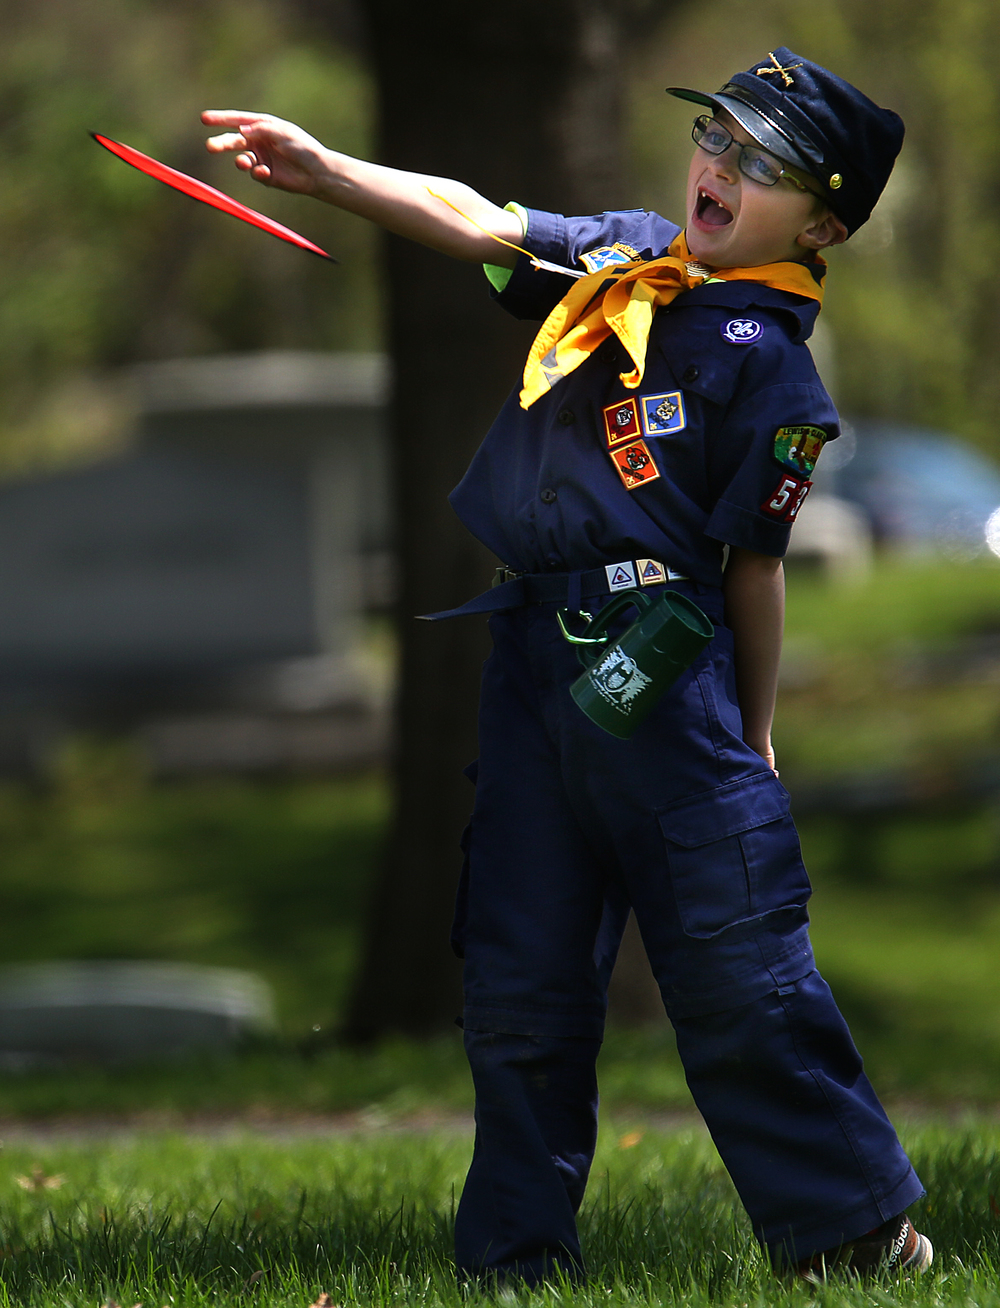 Cub scout Braydon Steelman, a member of pack 53 from Hamel, Ill, has fun throwing a frisbee before the start of the Sunday ceremony. David Spencer/The State Journal-Register